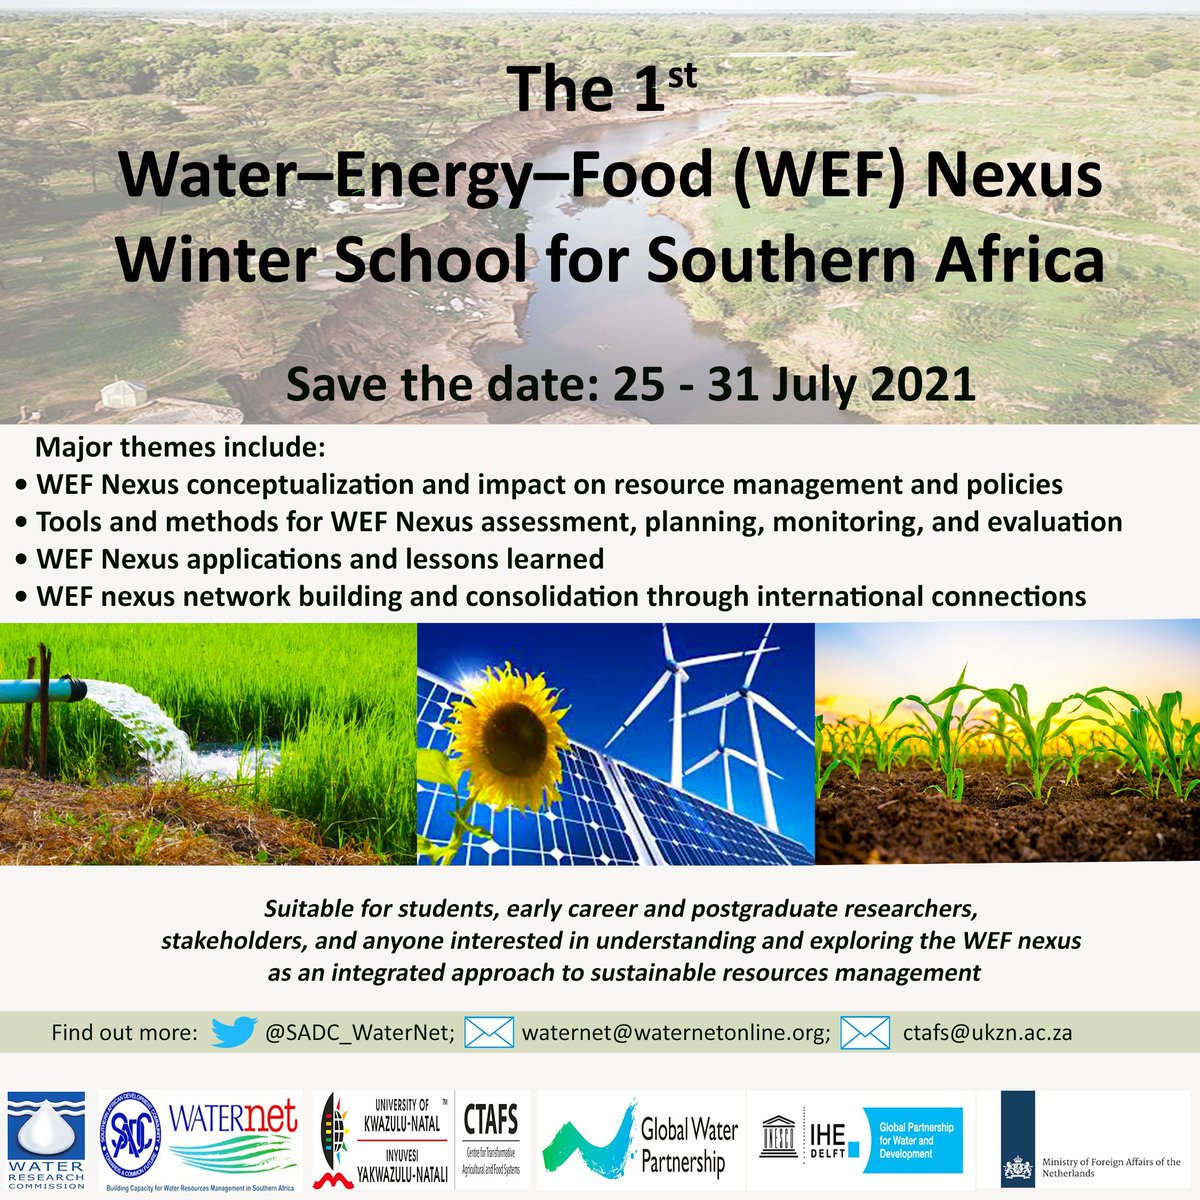 test Twitter Media - Save the date: 25 - 31 July 2021   First ever Water-Energy-Food (WEF) Nexus Winter School for Southern Africa co-hosted by @SADC_WaterNet   https://t.co/FSqrJ3tHv3 https://t.co/YkNQCQNcxj